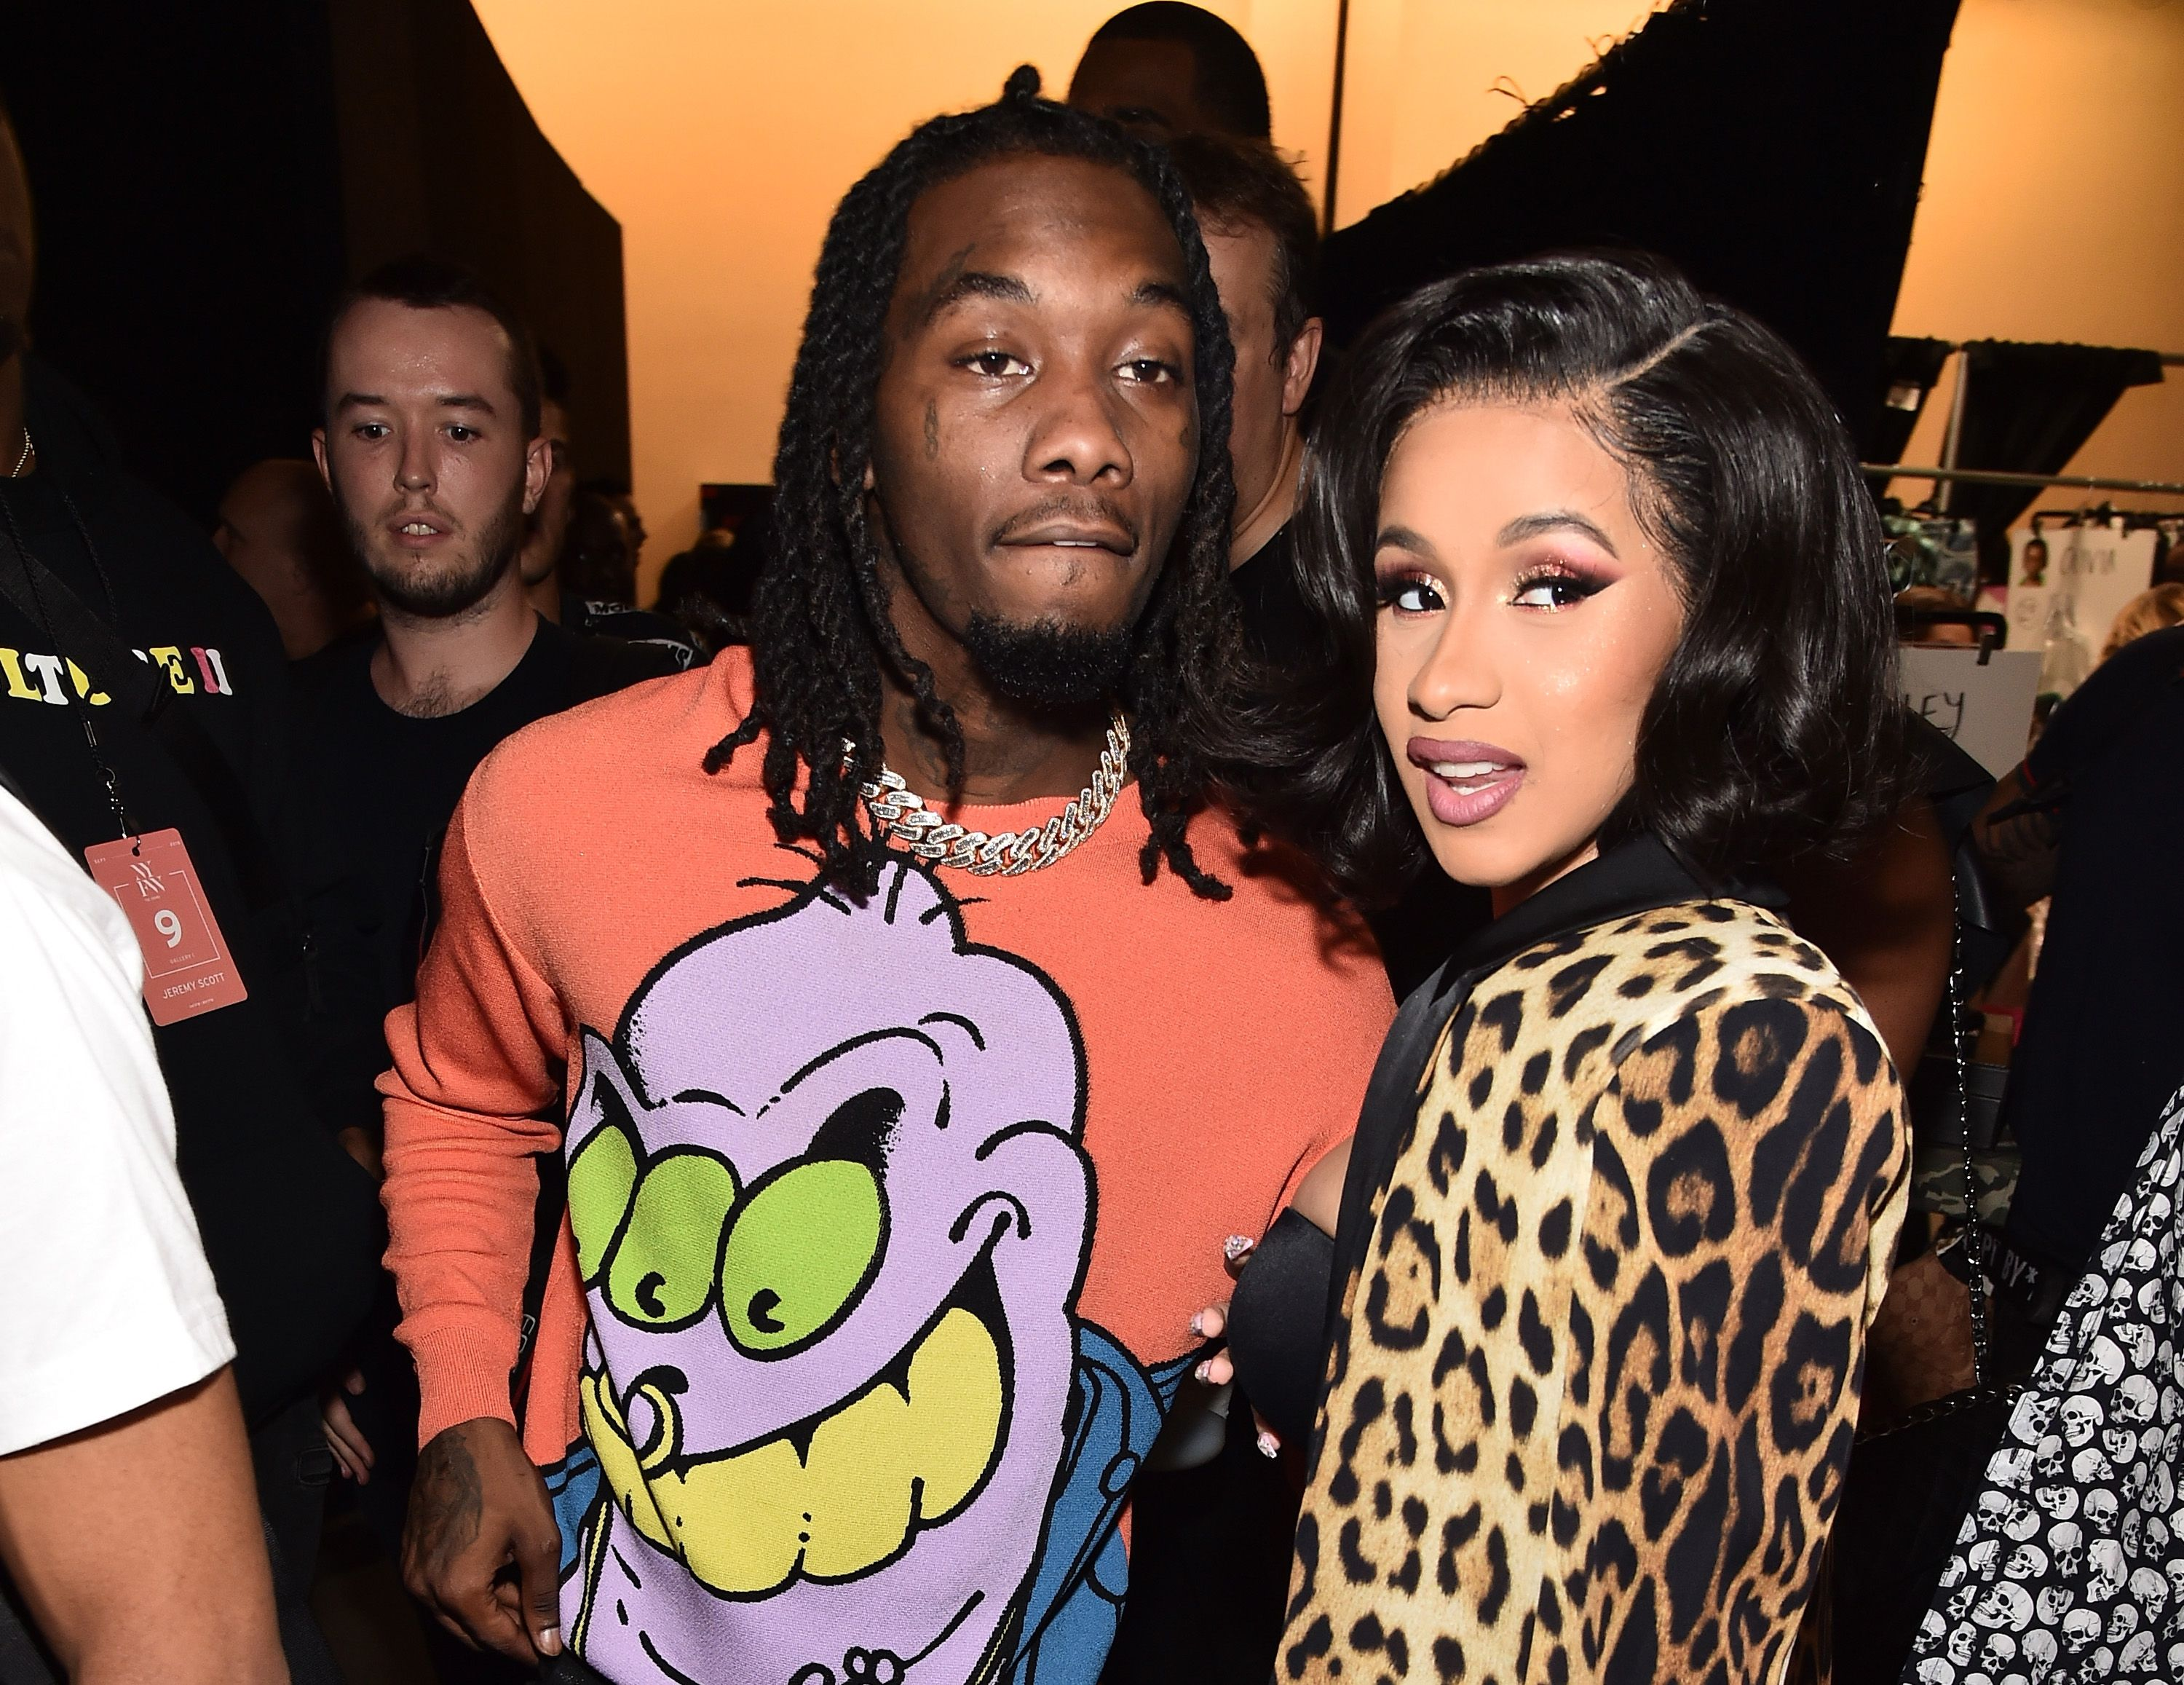 Summer Bunni Apology to Cardi B Over Offset Cheating Rumors